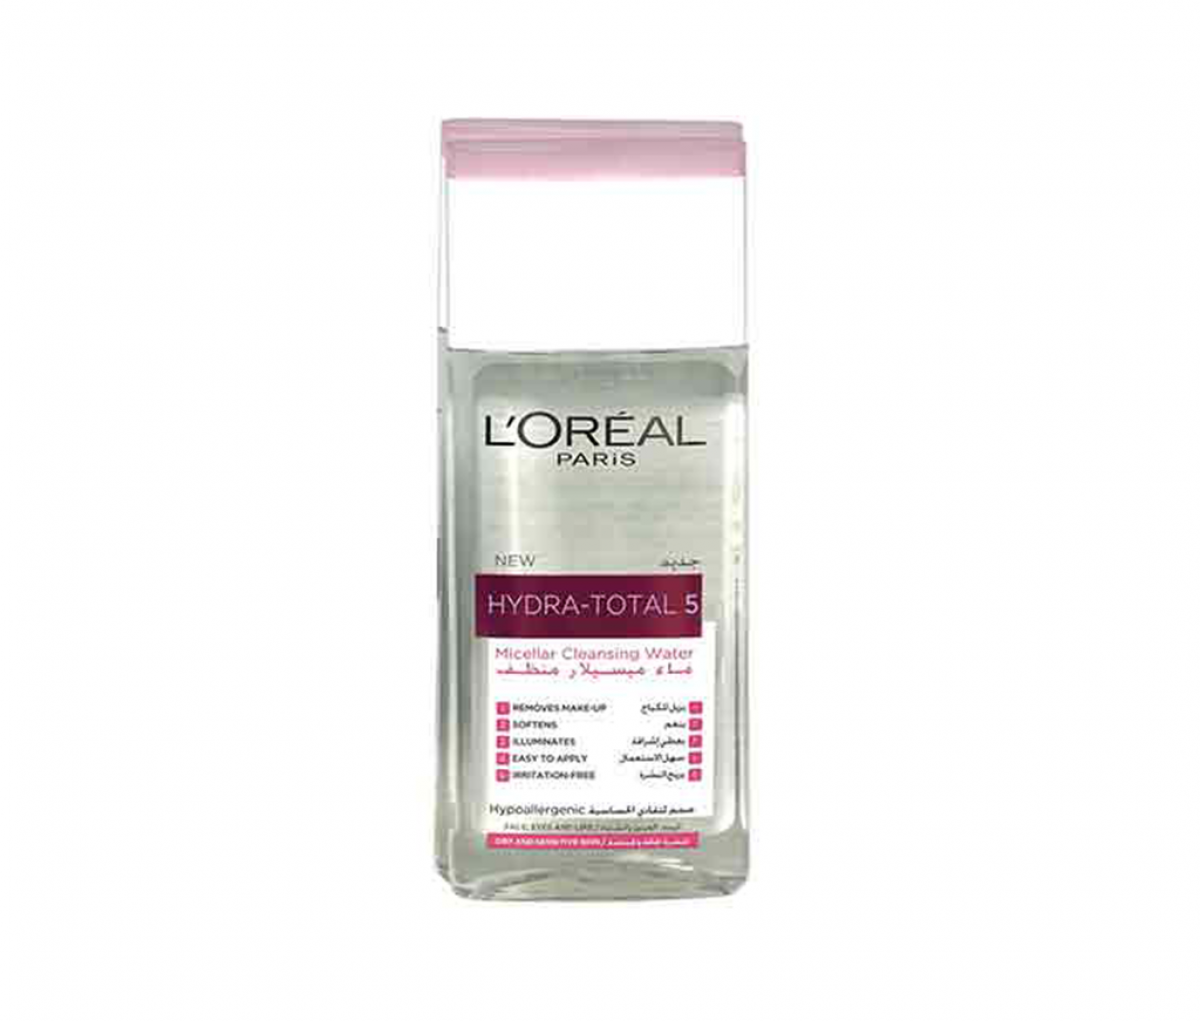 L'Oreal  Micellar Cleansing Water Hydra Total